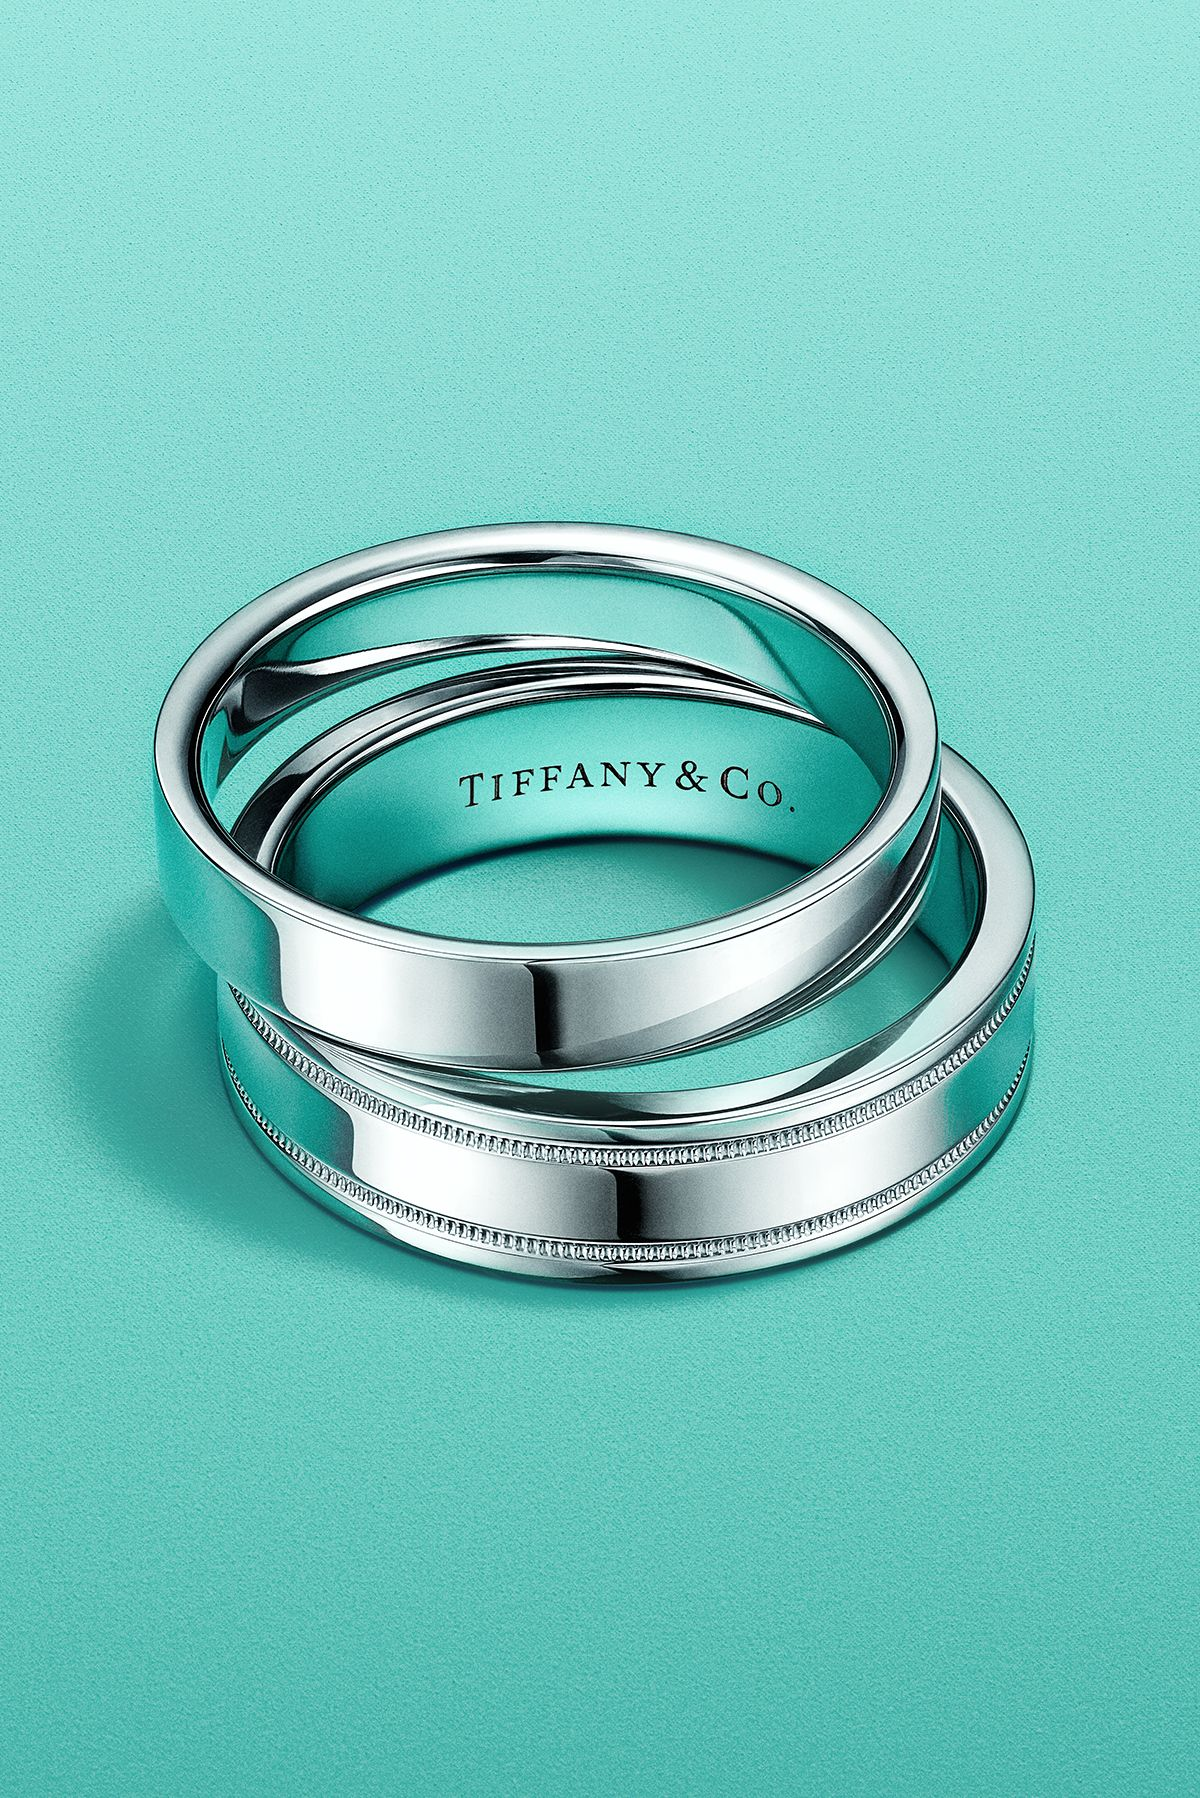 Tiffany Classic And Tiffany Flat Band Rings In Platinum Tiffany Wedding Rings Tiffany And Co Necklace Blue Wedding Rings